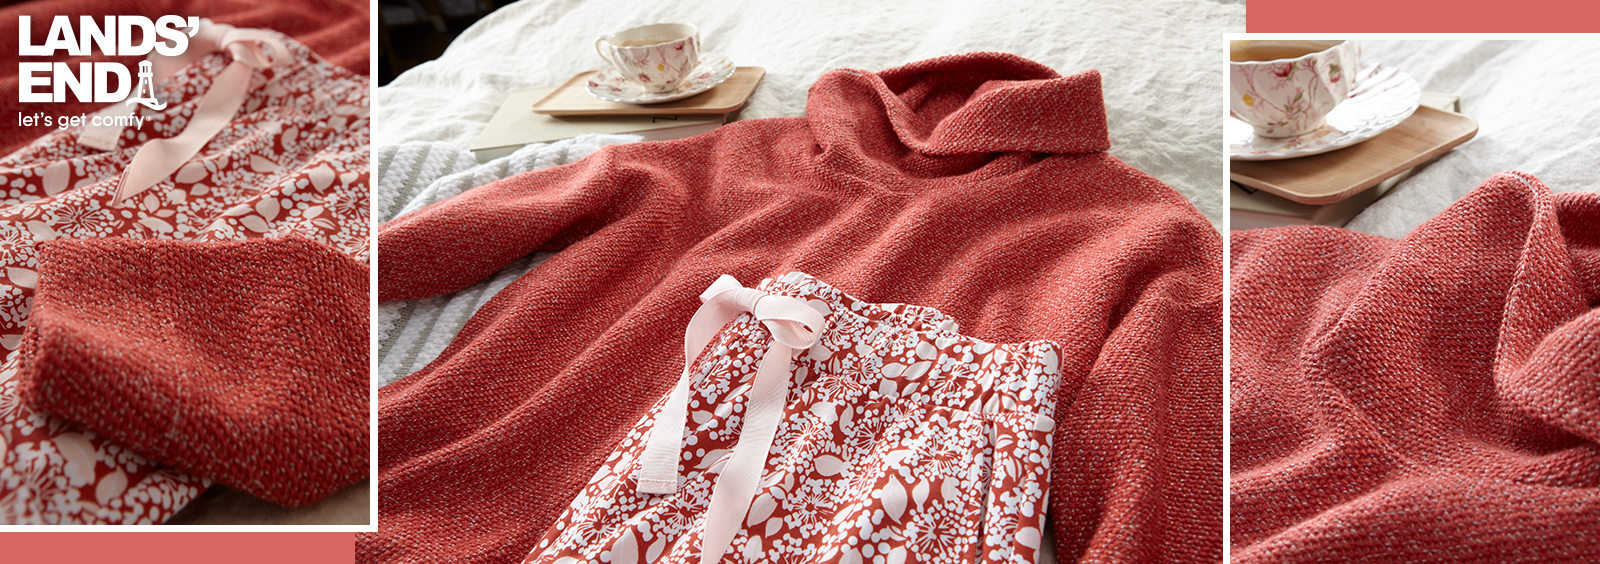 Cozy Outfits for Your Next Staycation